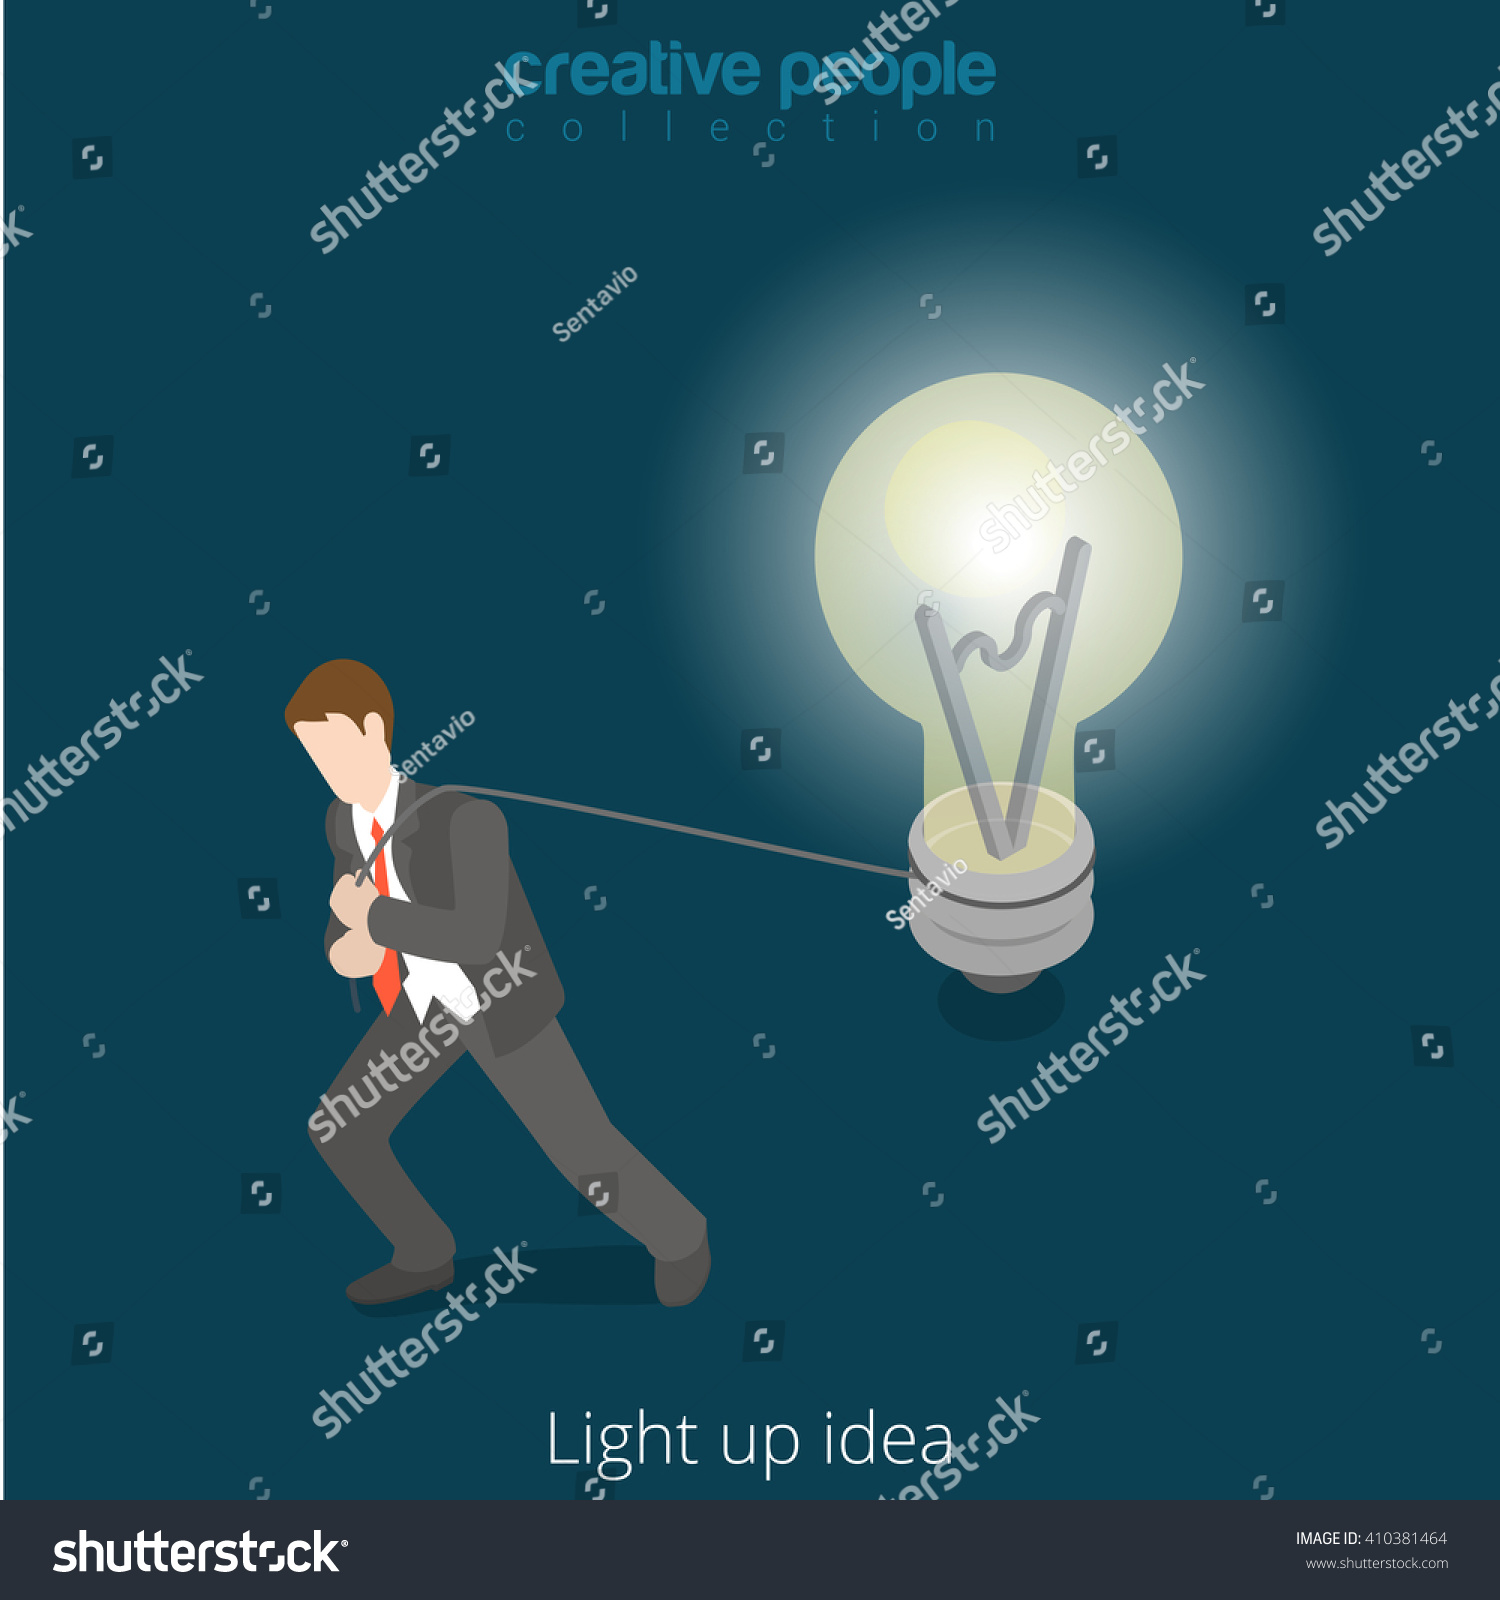 Light Drive Drudge Your Idea Concept Stock Vector Royalty Free Lamp Wiring Supplies Promotiononline Shopping For Promotional Up 3d Isometric Style Illustration Businessman